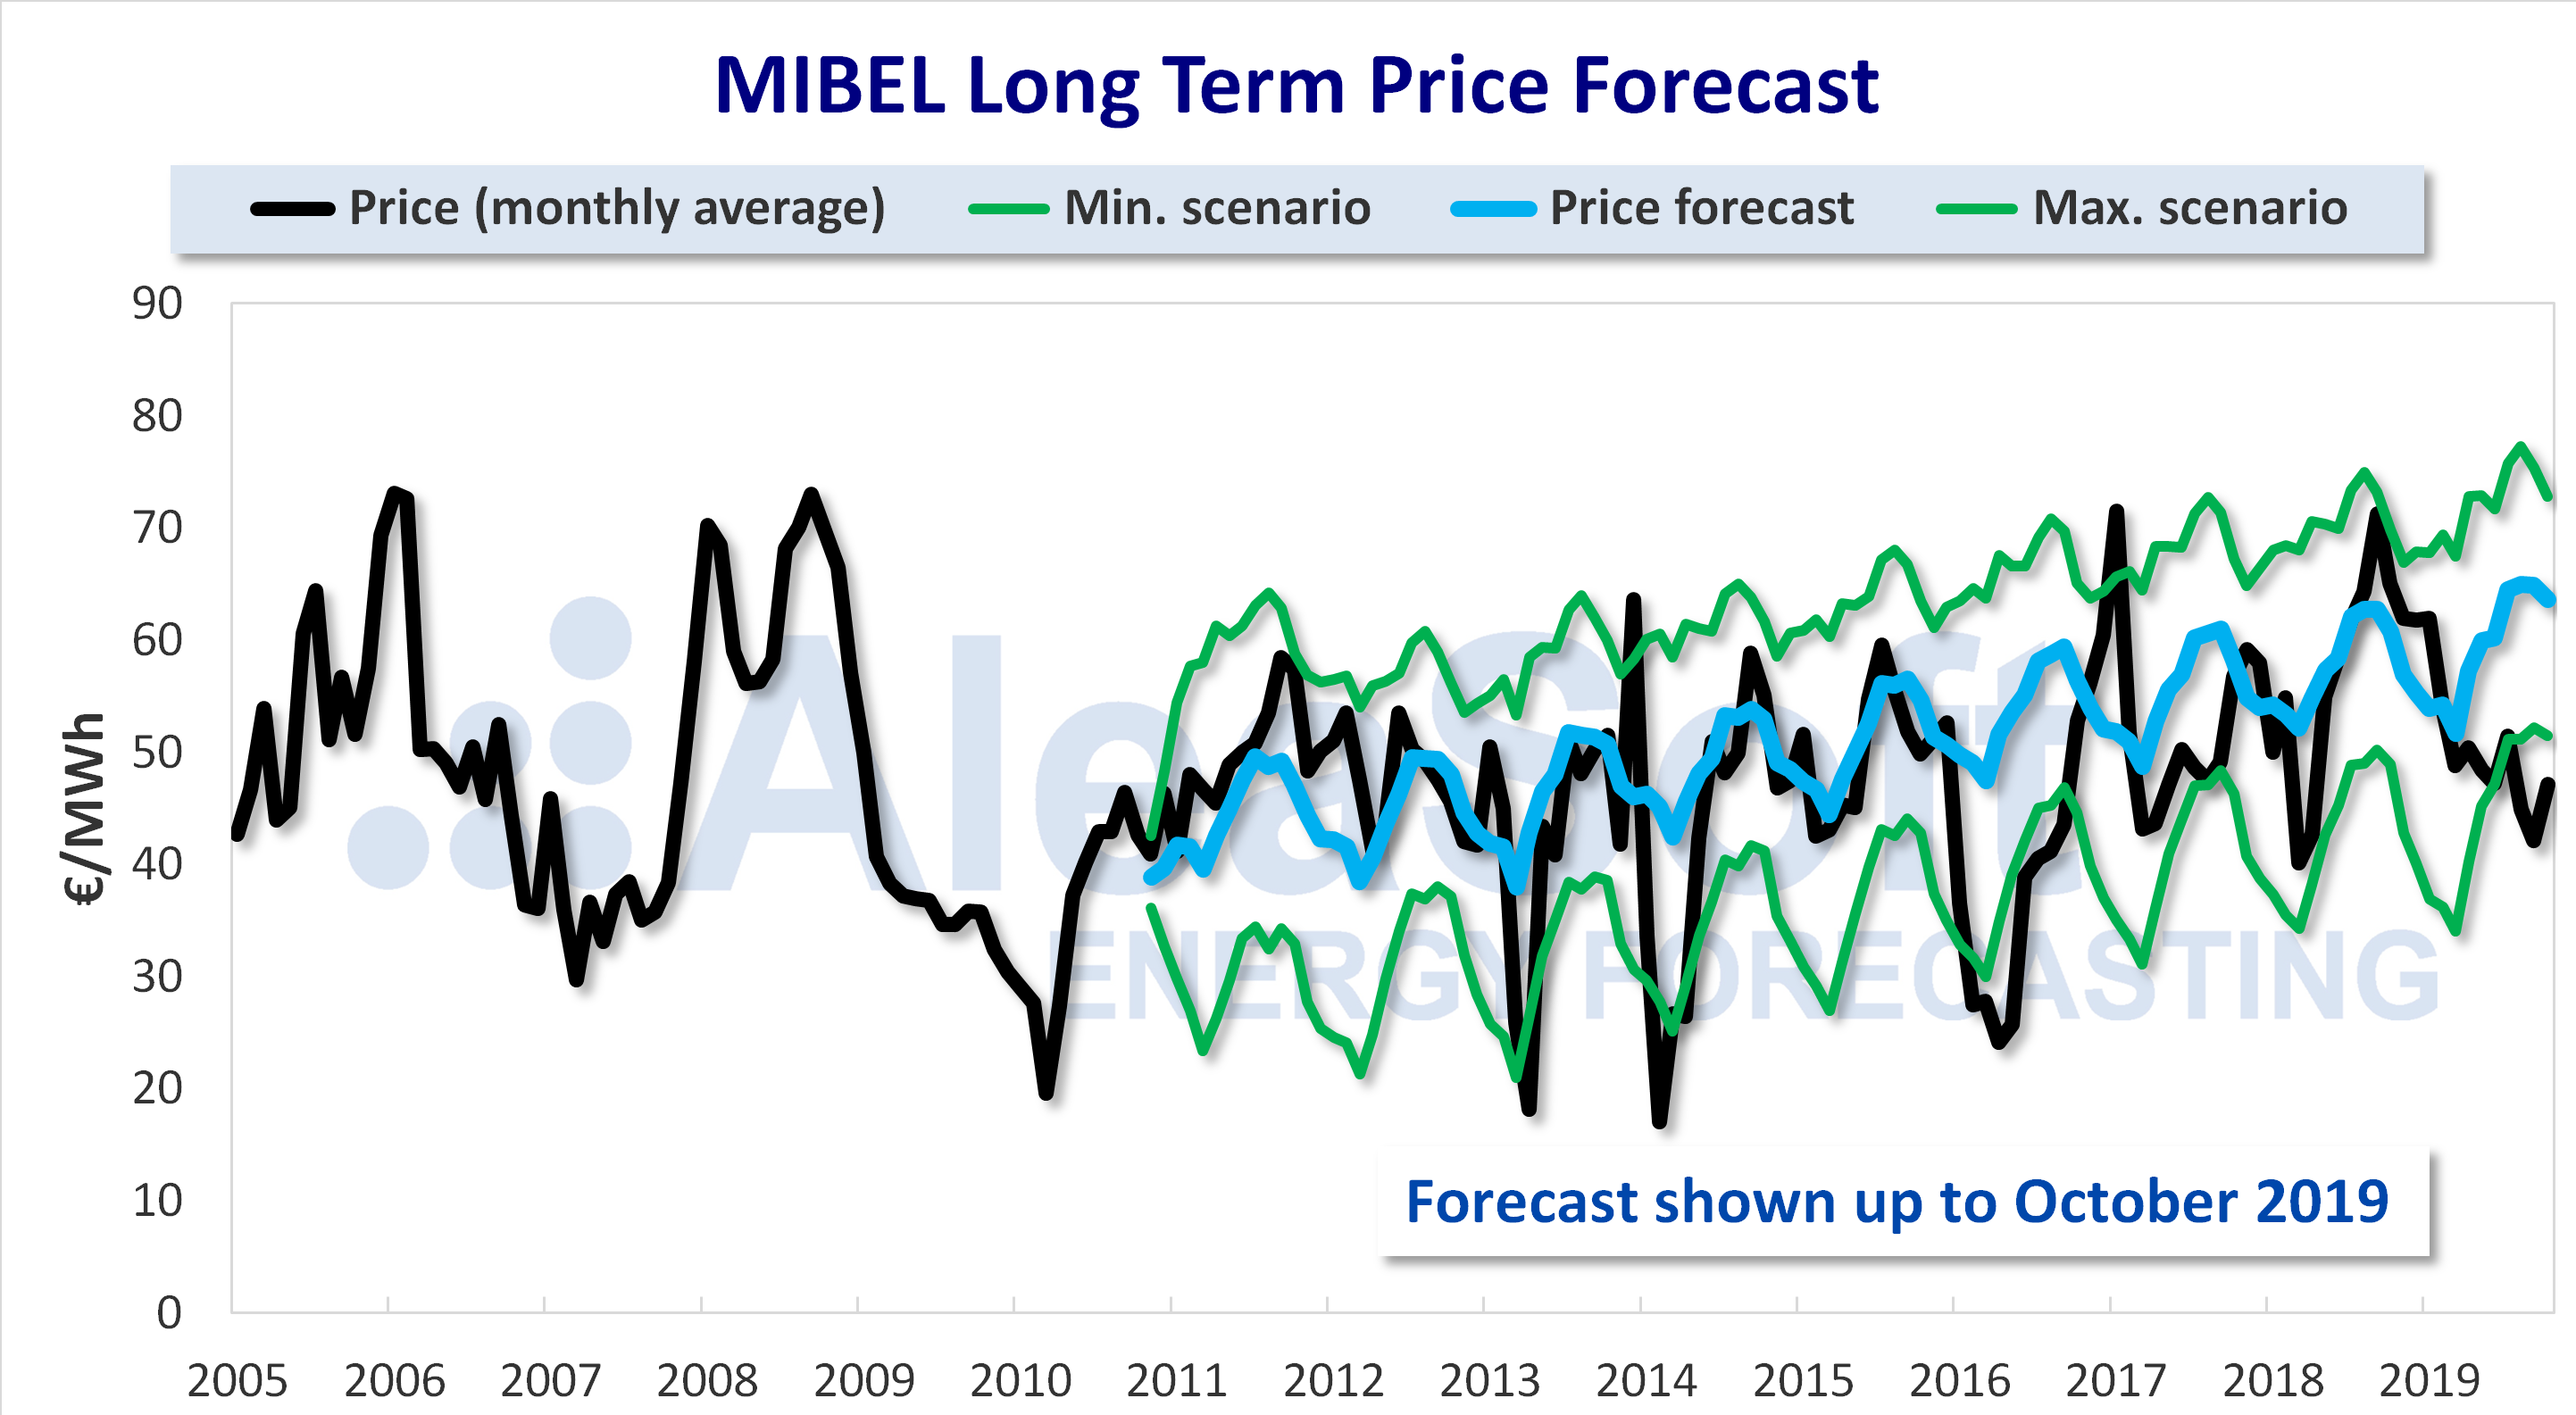 AleaSoft - MIBEL market price long term price forecasting 15 years